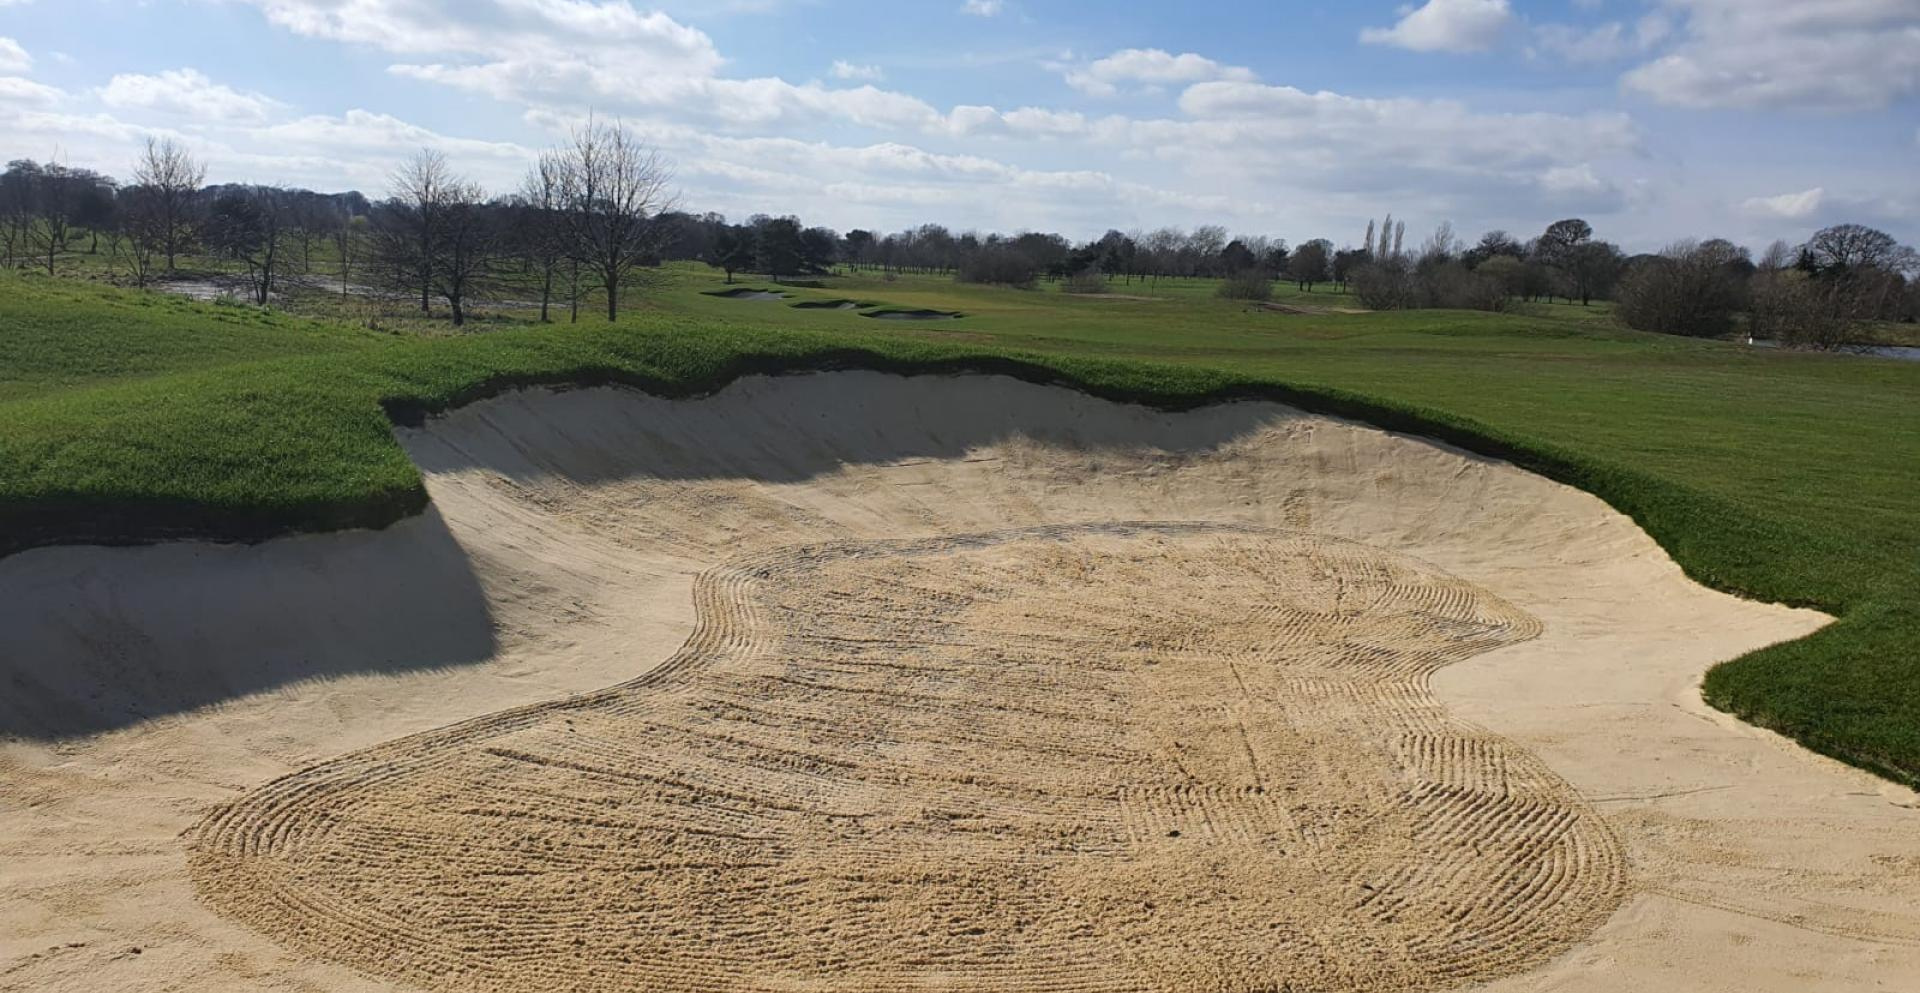 New bunkers on the 15th near completion